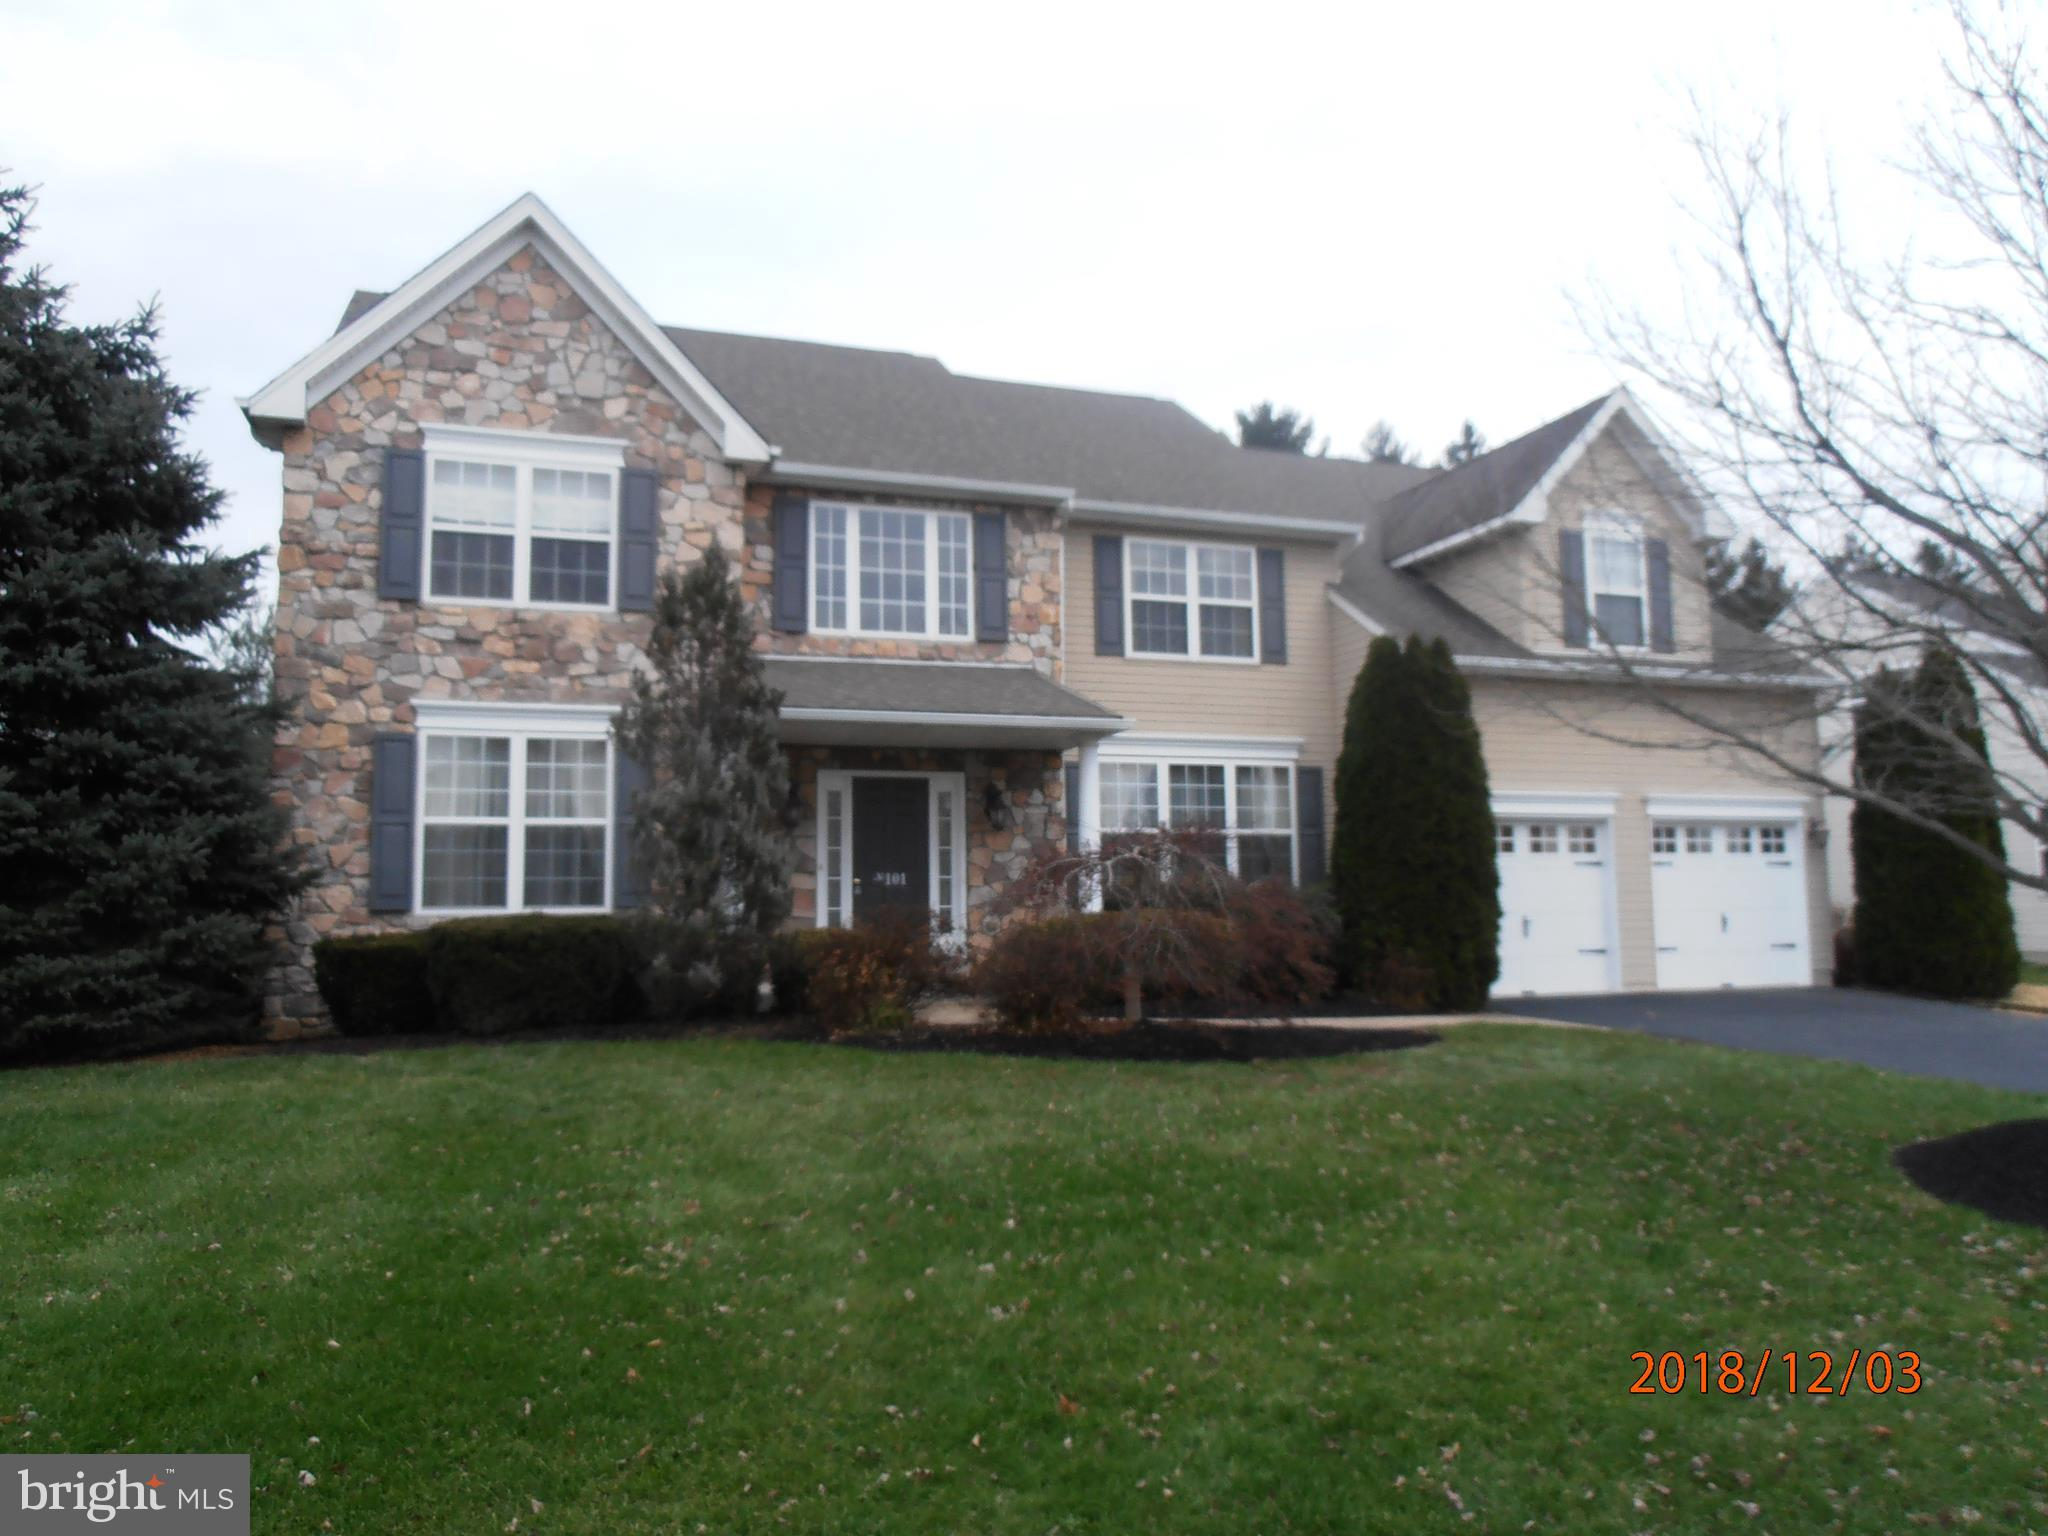 101 SOVEREIGN DRIVE, WARRINGTON, PA 18976